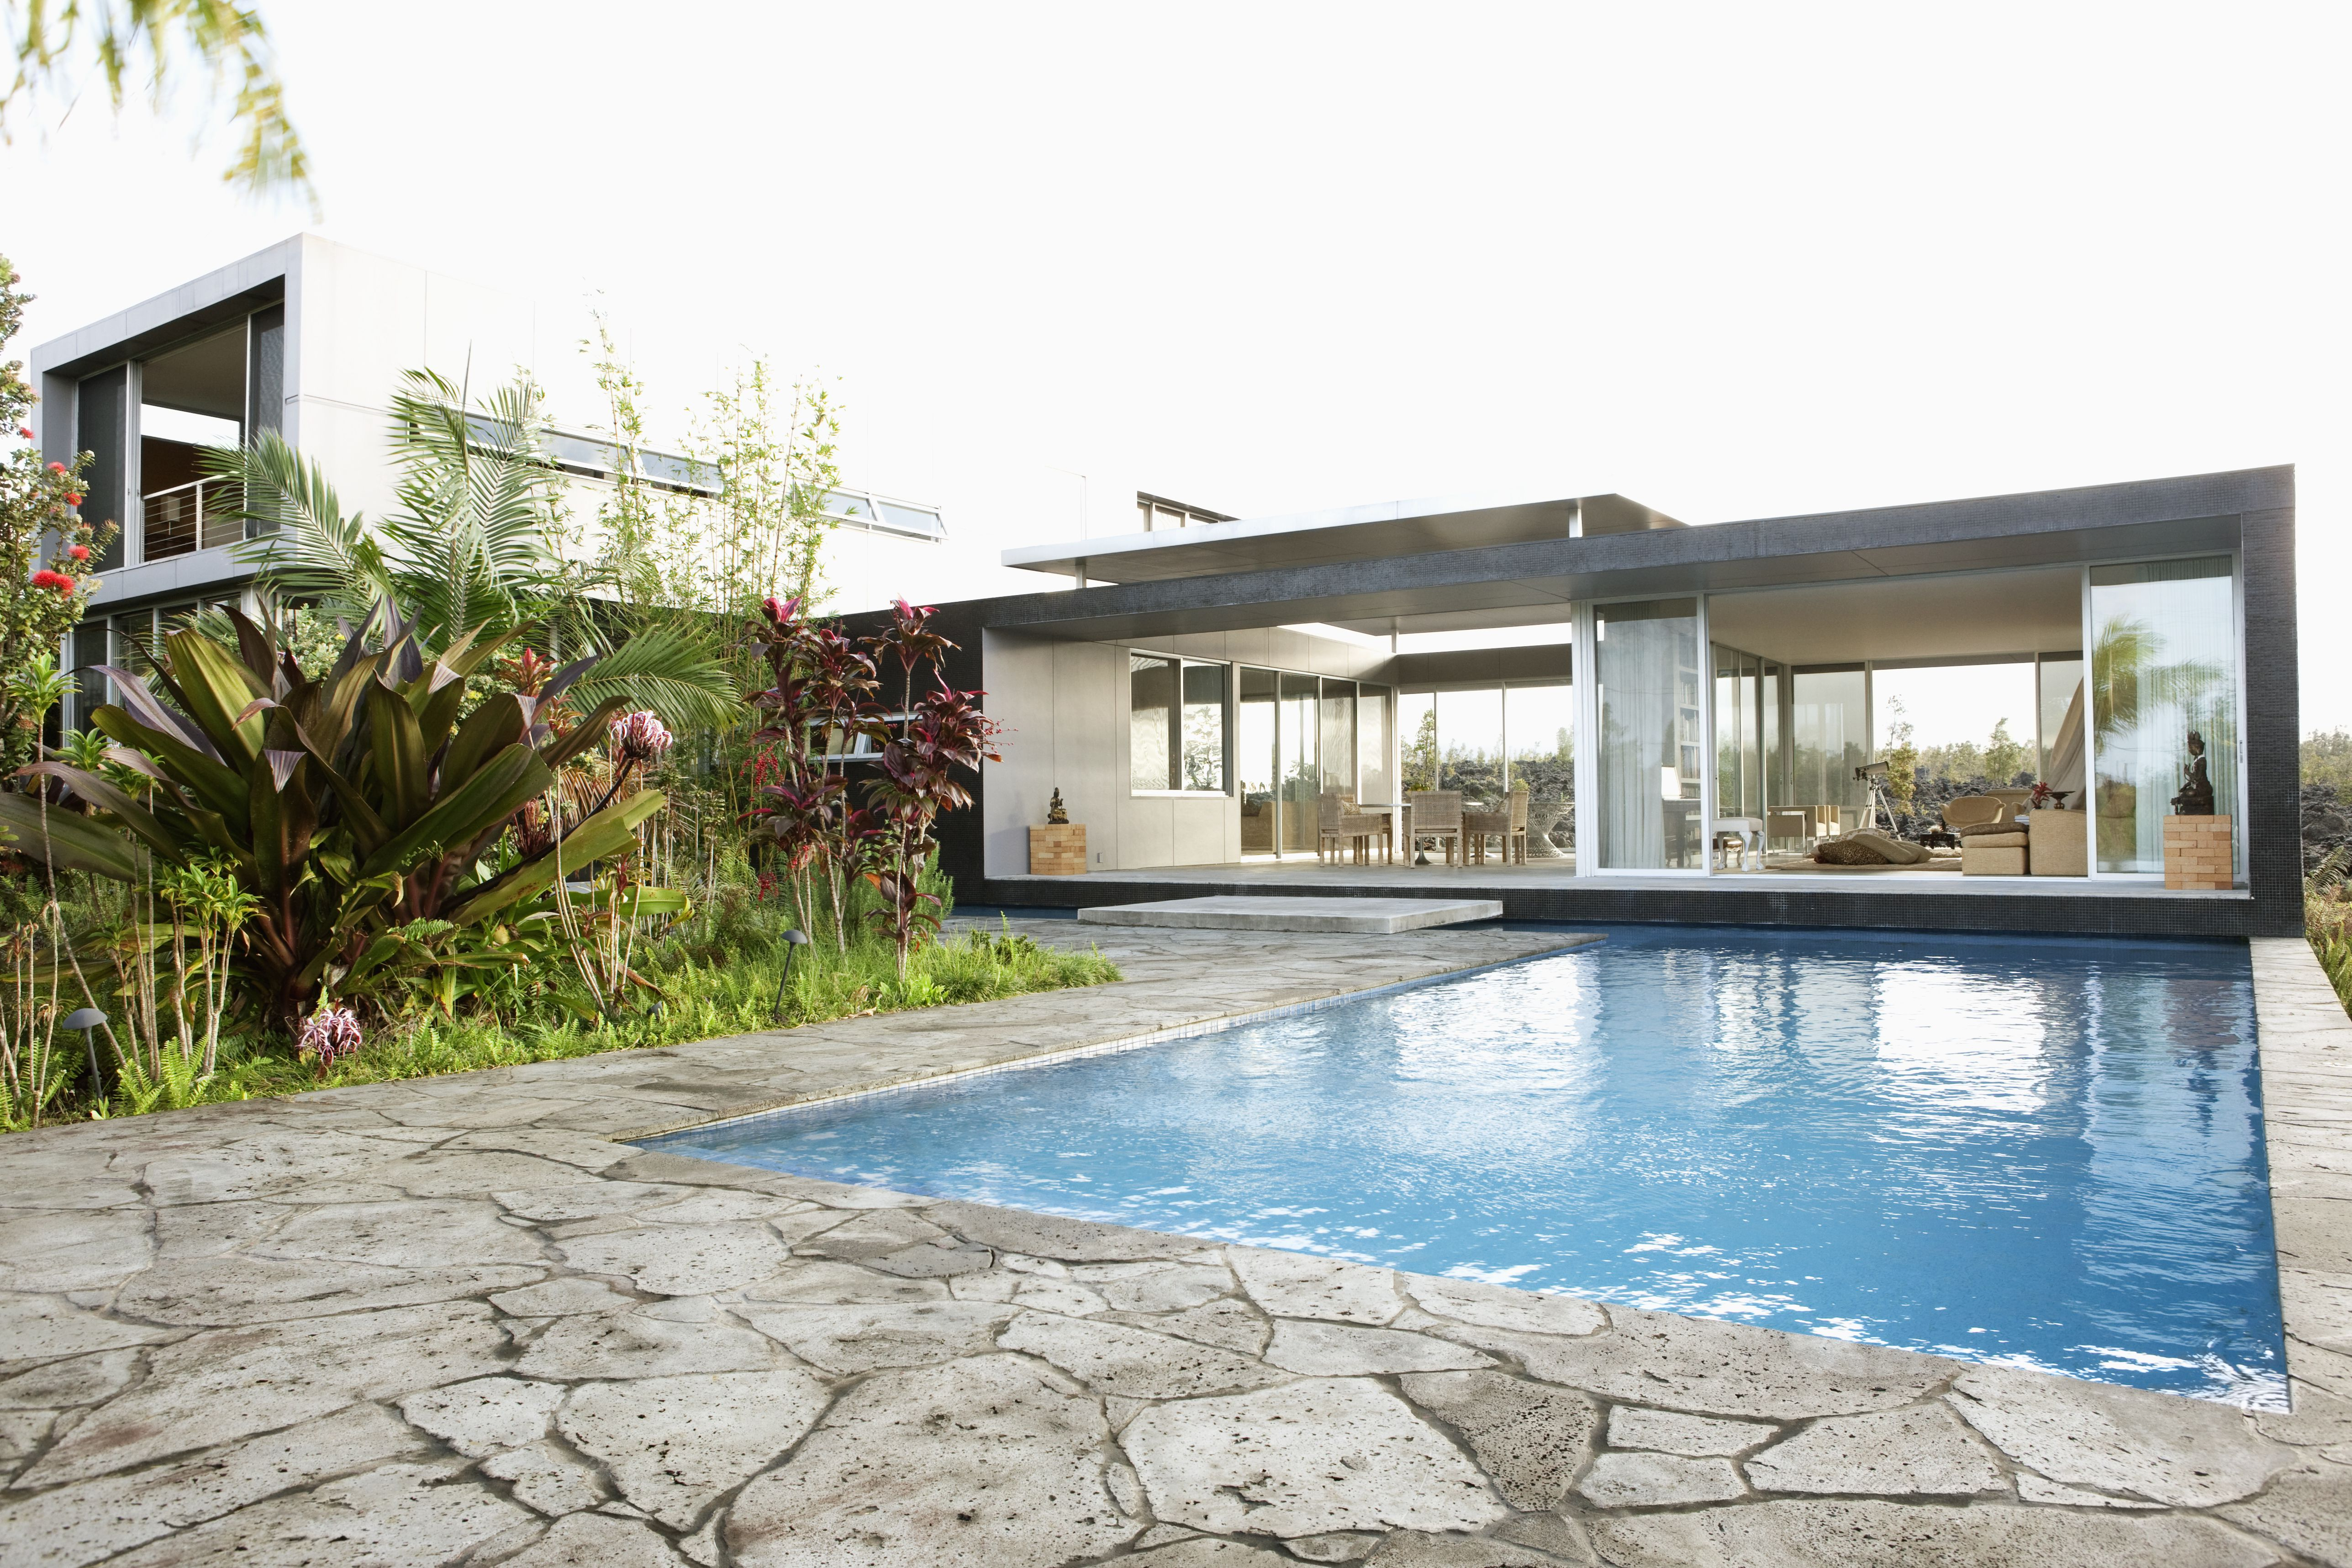 How Much Does an In-Ground Pool Cost?